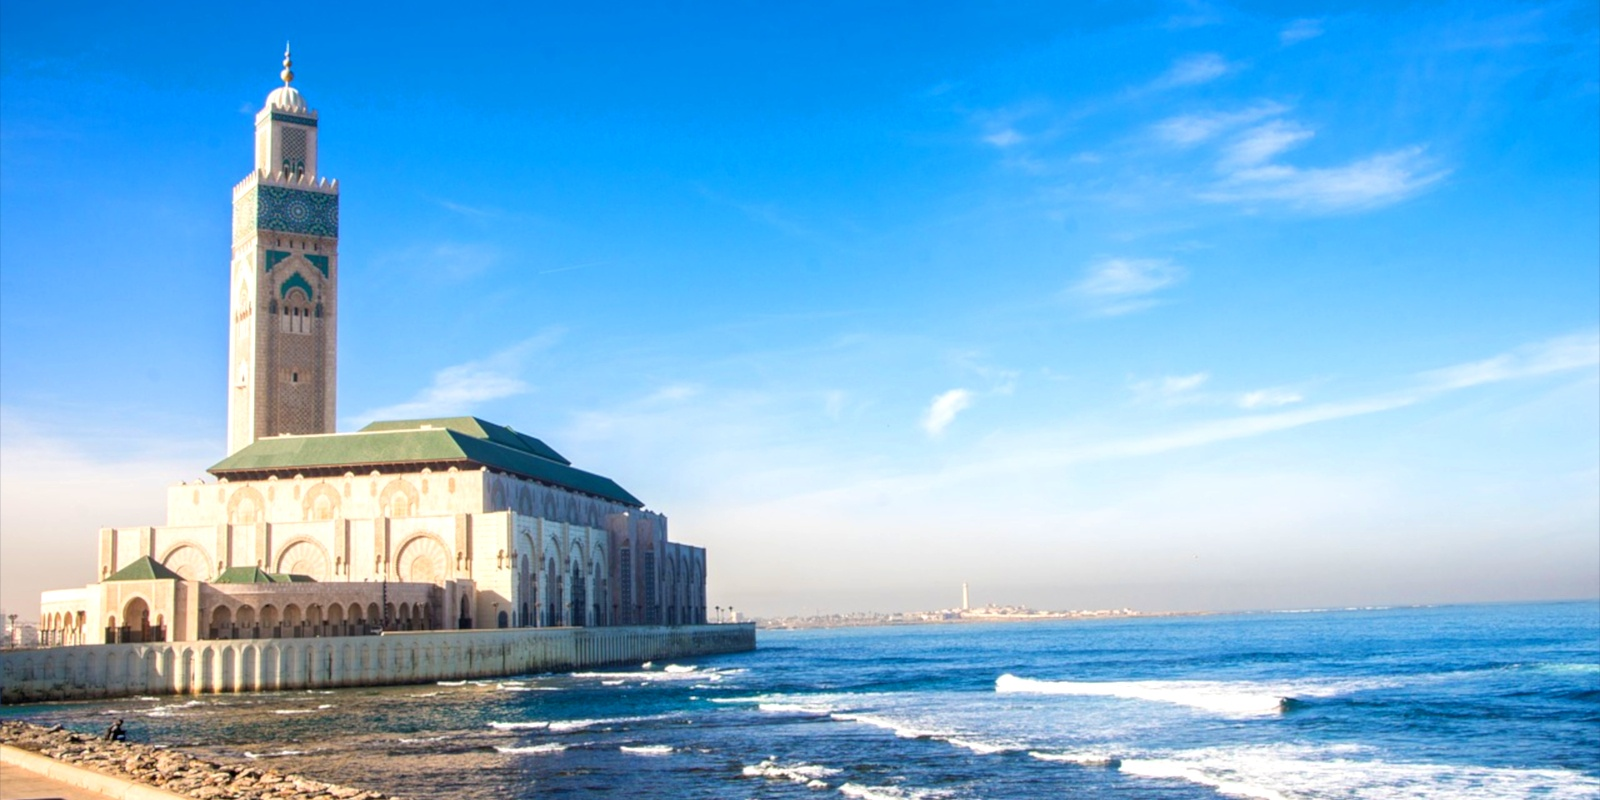 Casablanca's Hassan II Mosque overlooks the Atlantic ocean, standing tall at an astounding 60 stories.